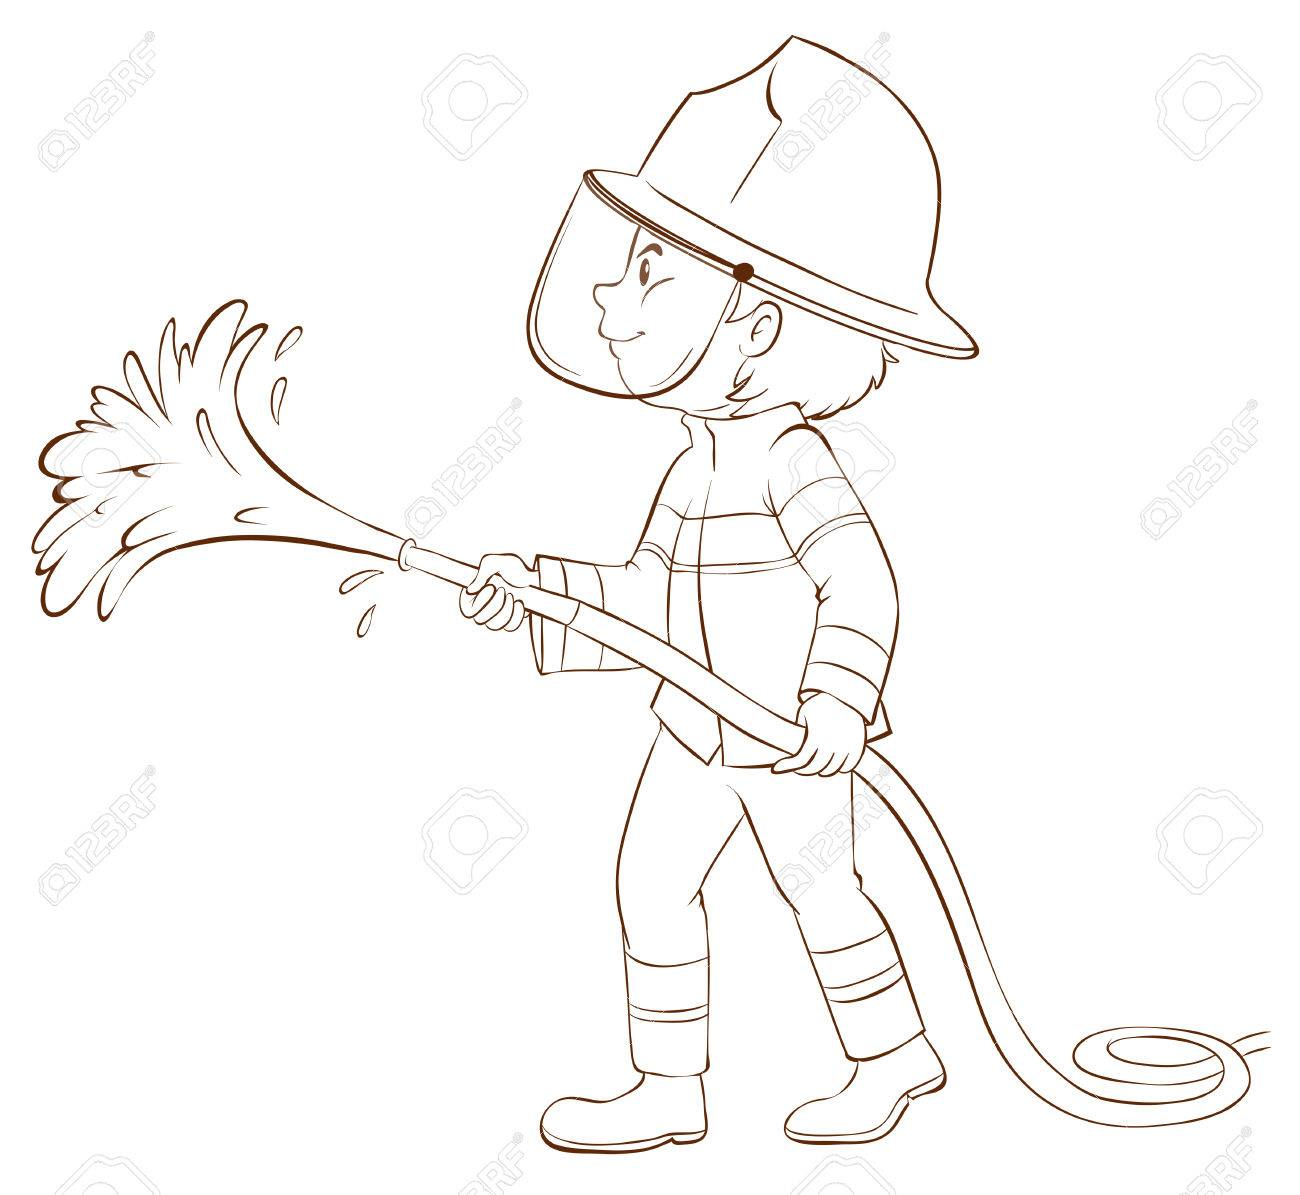 1300x1195 Illustration Of A Plain Sketch Of A Fireman Holding A Hose